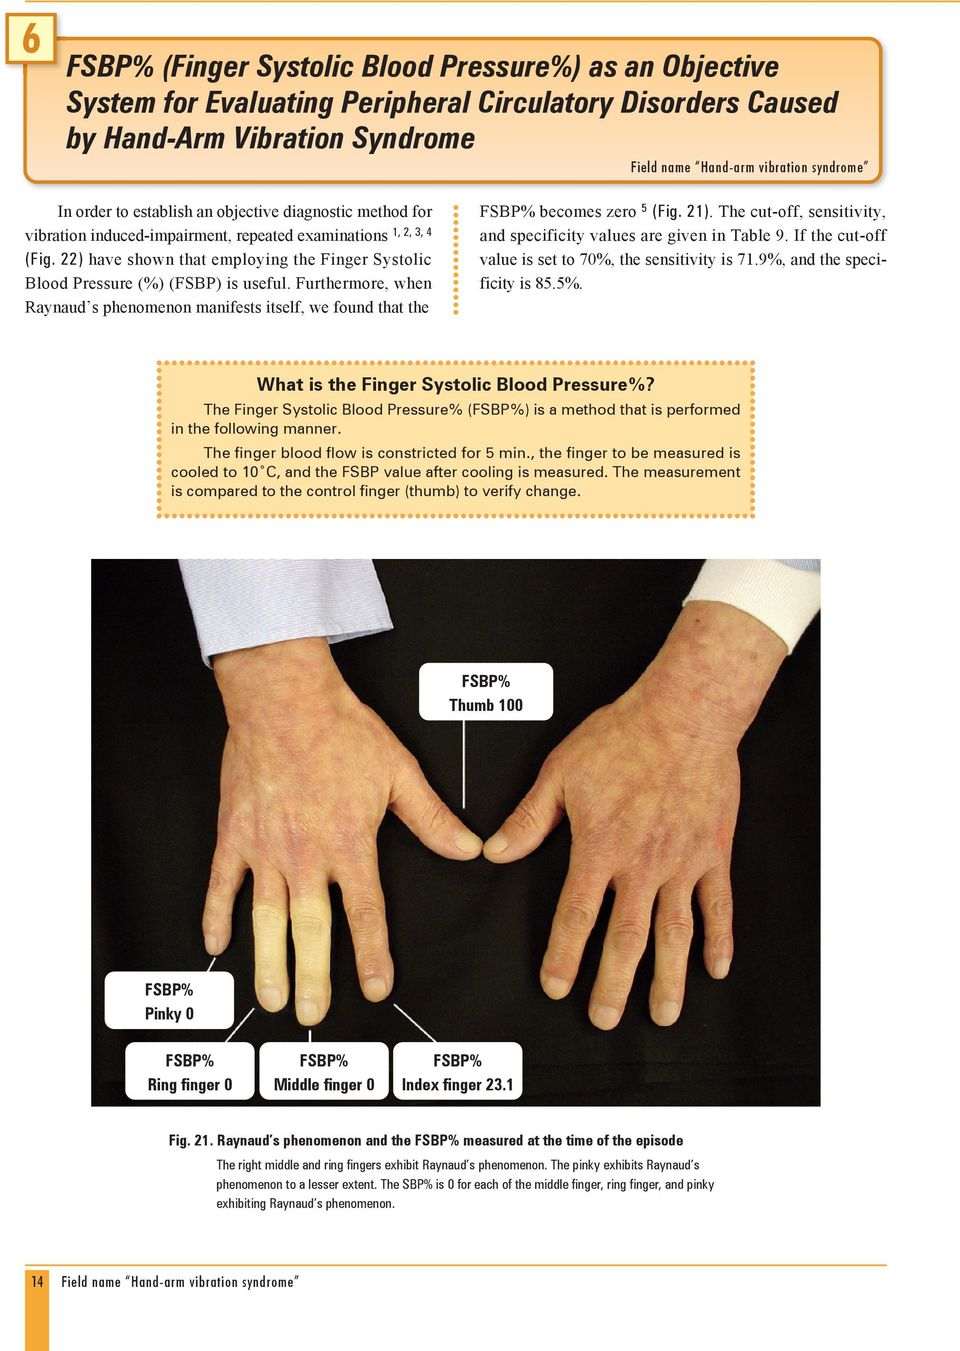 22) have shown that employing the Finger Systolic Blood Pressure (%) (FSBP) is useful. Furthermore, when Raynaud s phenomenon manifests itself, we found that the FSBP% becomes zero 5 (Fig. 21).